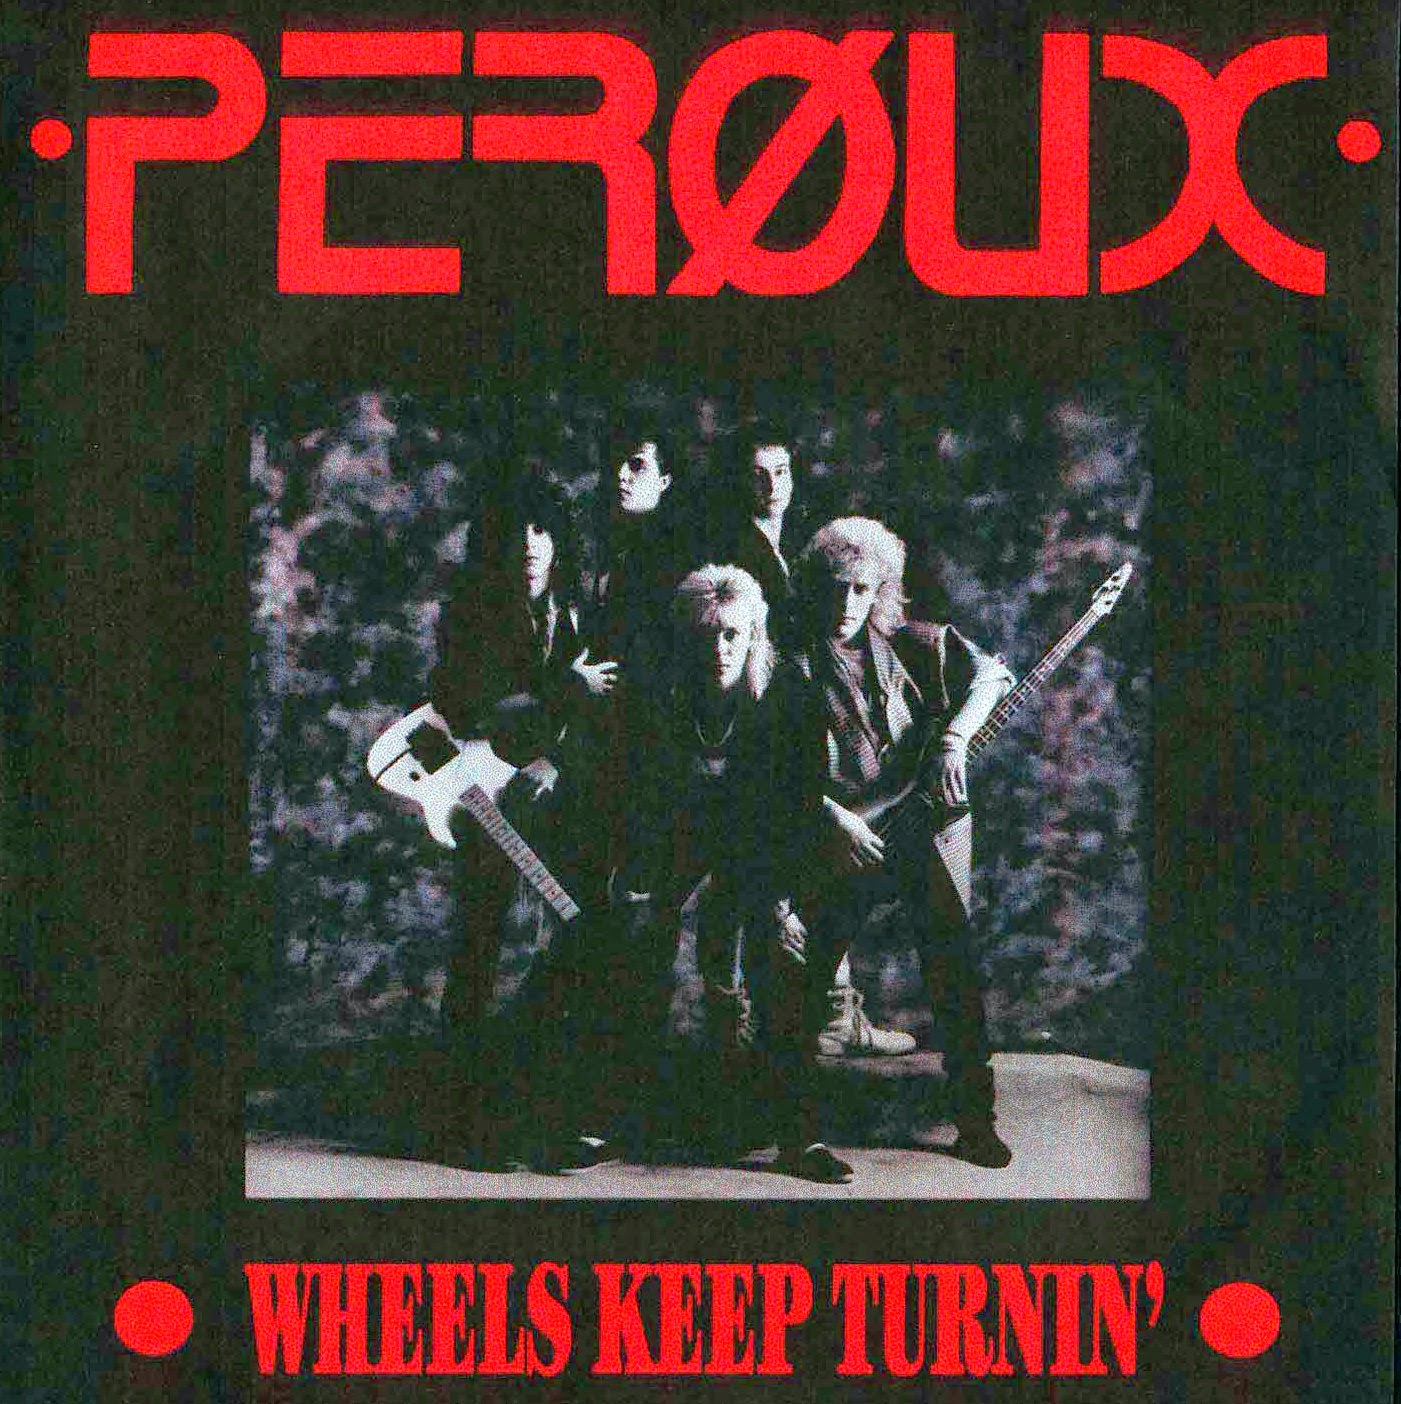 Peroux Wheels keep turning 1988